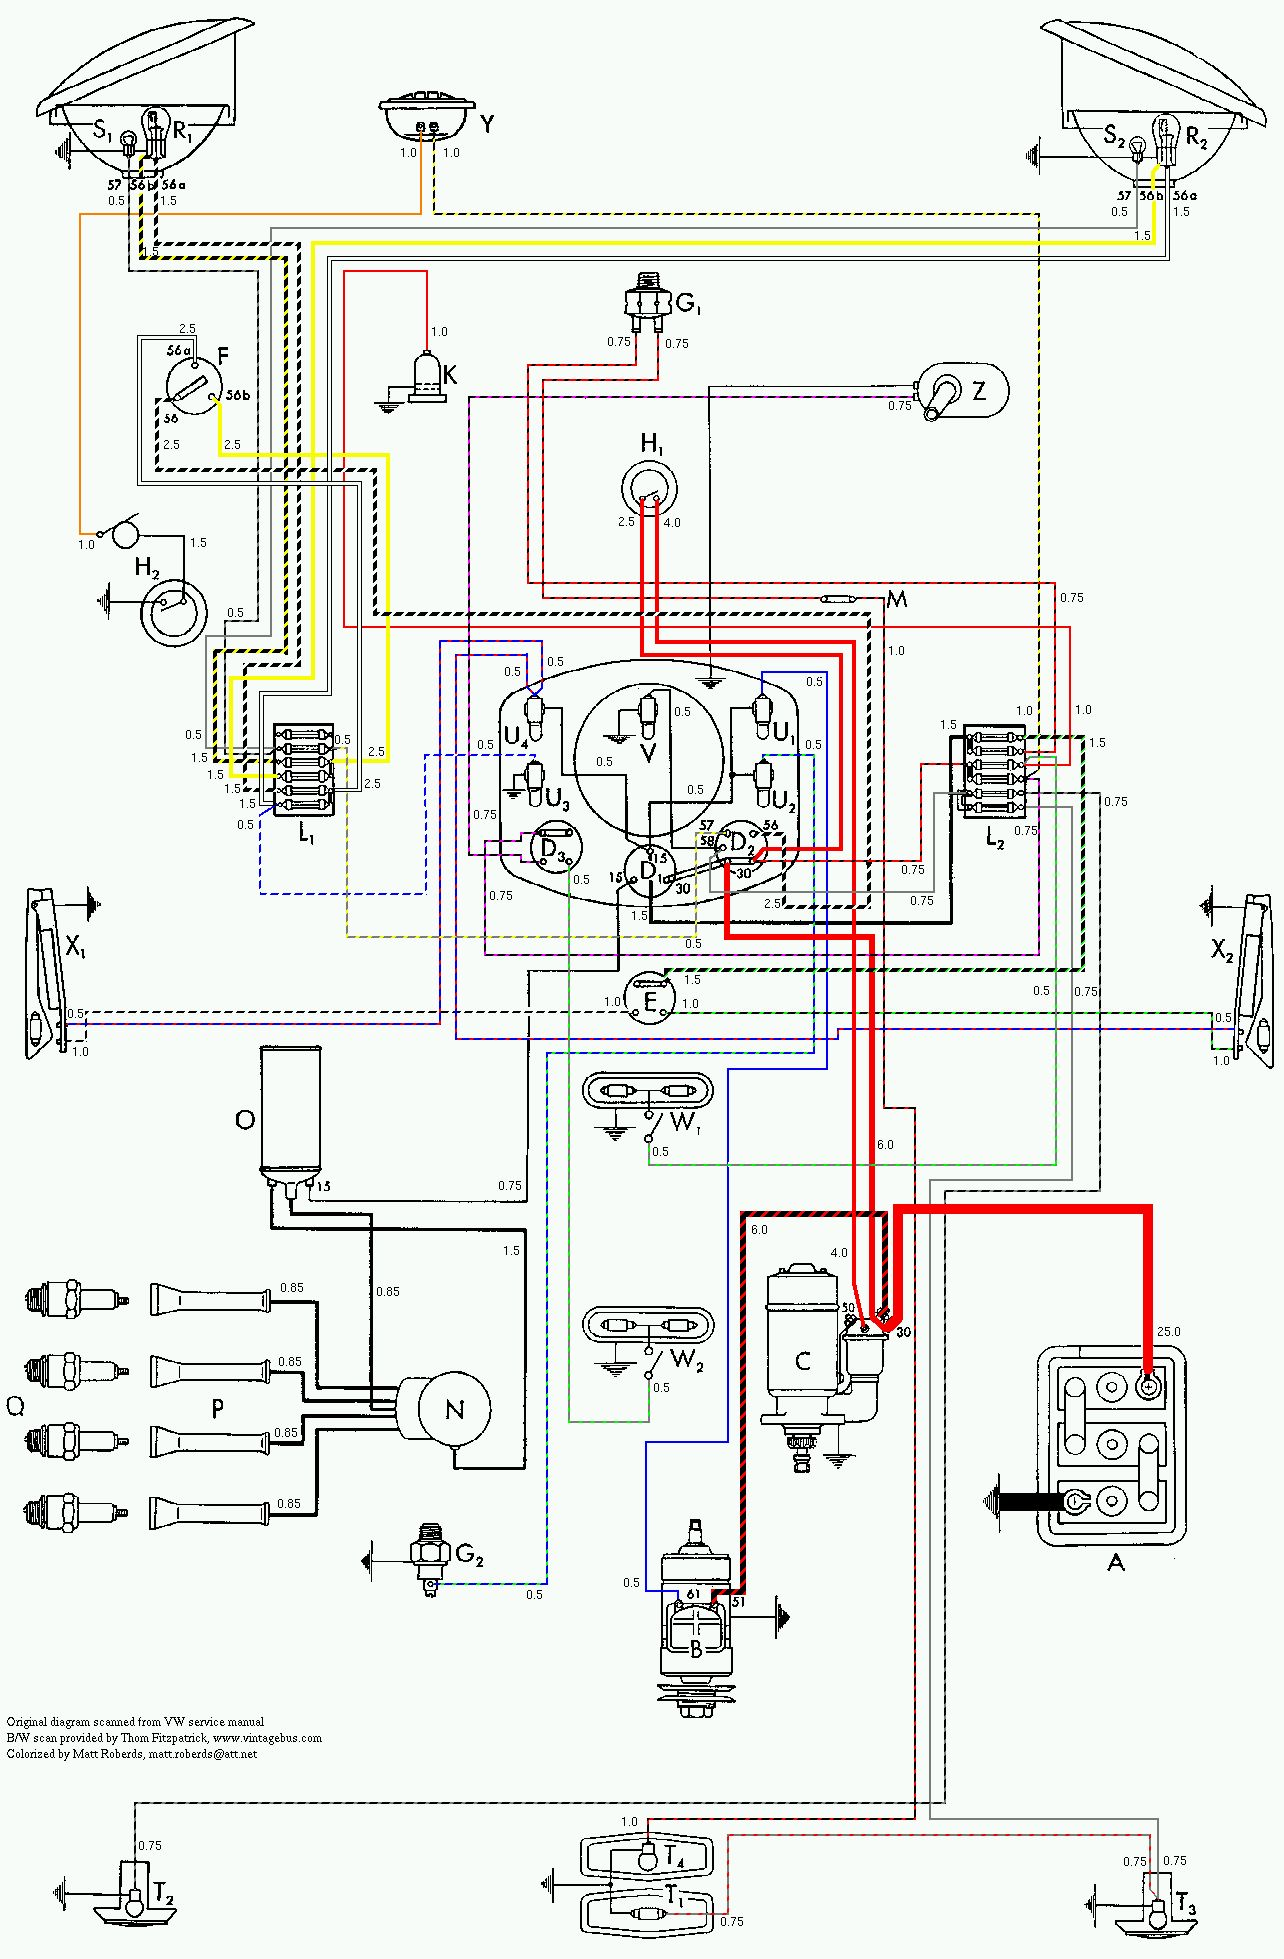 bus 53 color vintagebus com vw bus (and other) wiring diagrams Volkswagen Type 2 Wiring Harness at crackthecode.co